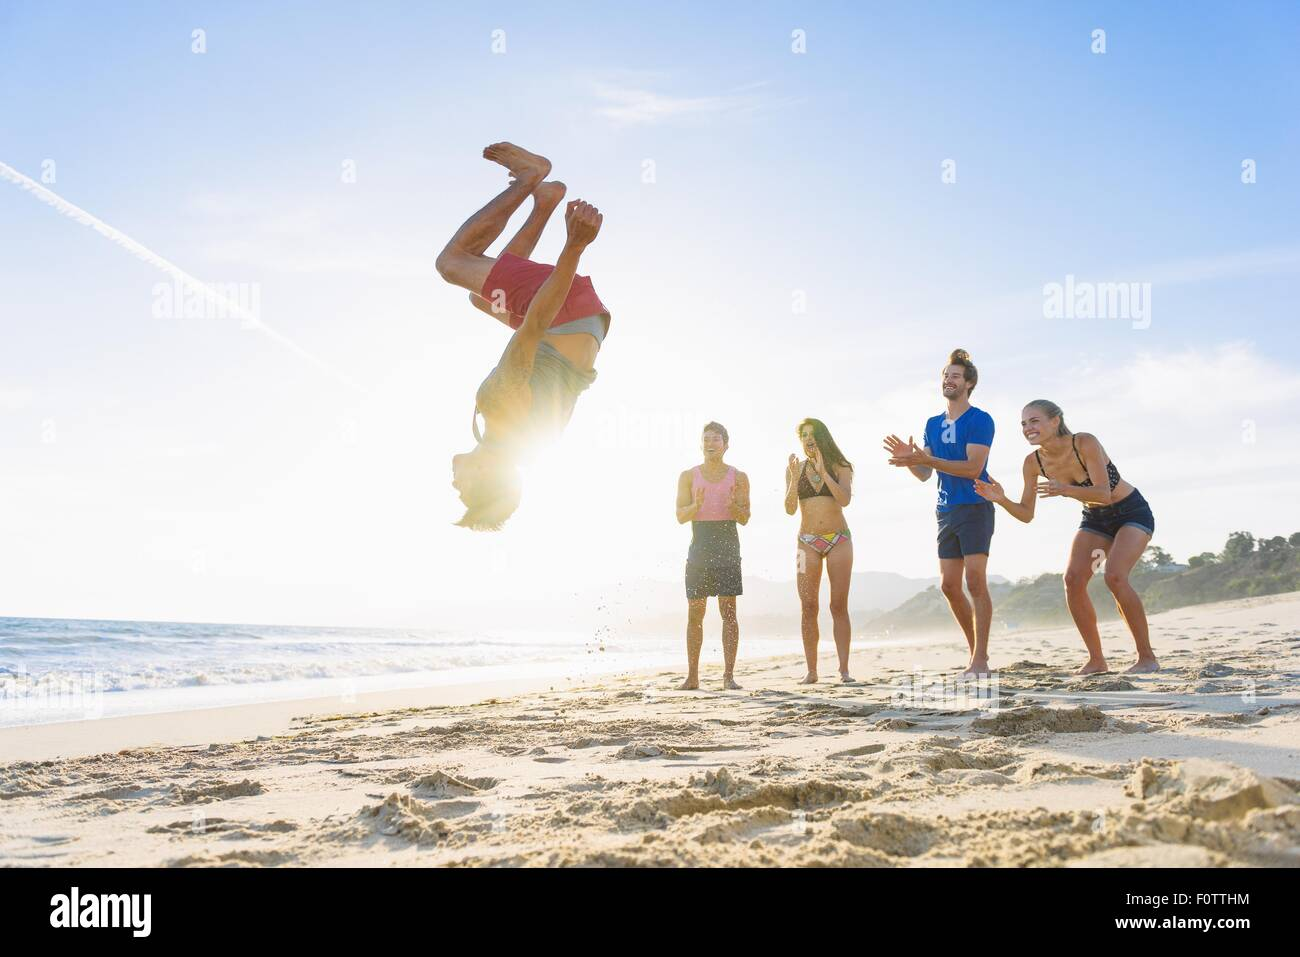 Group of friends on beach watching friend do somersault Stock Photo